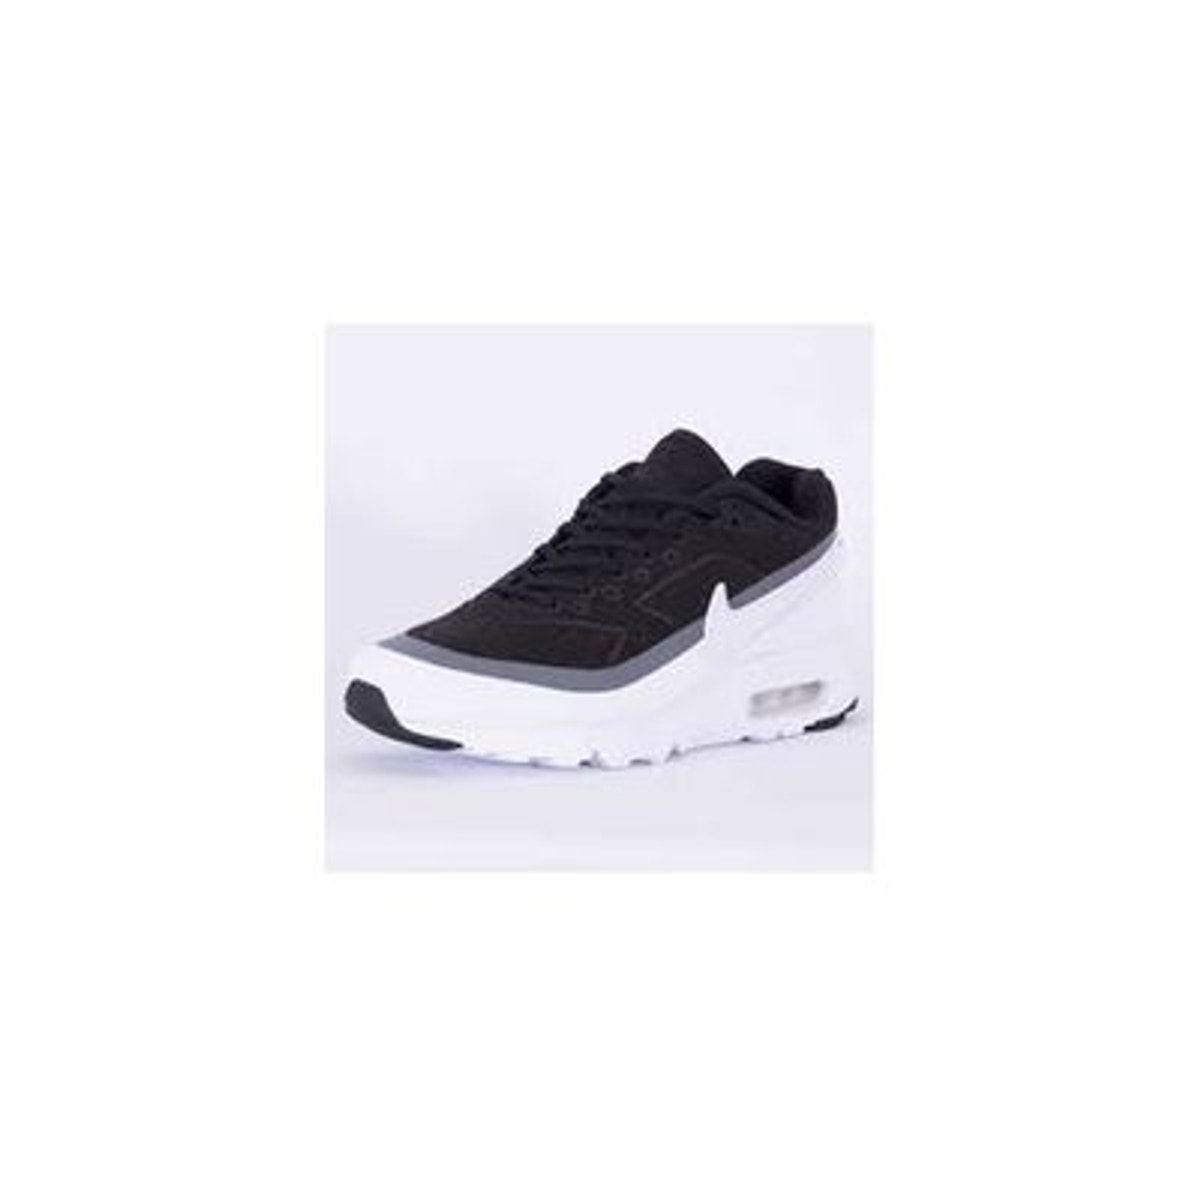 basket nike air max bw ultra moire ref 918205-001